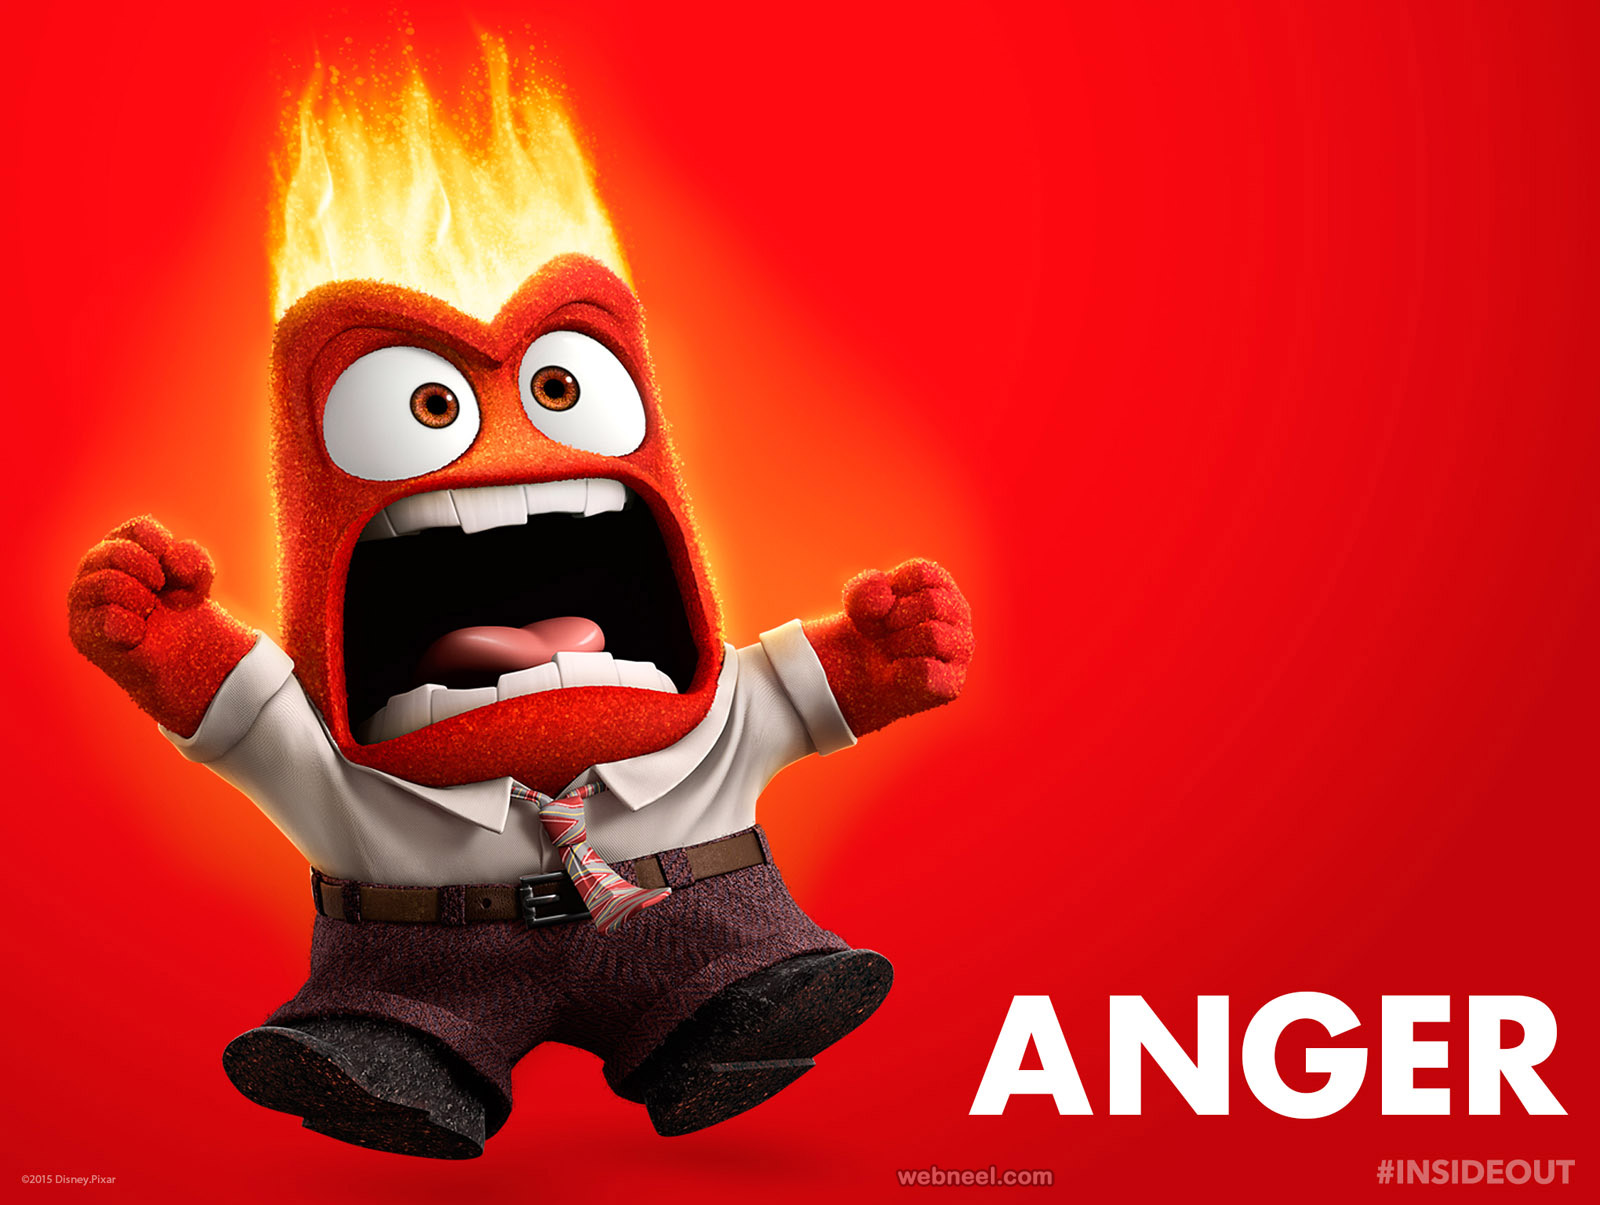 disney inside out characters anger